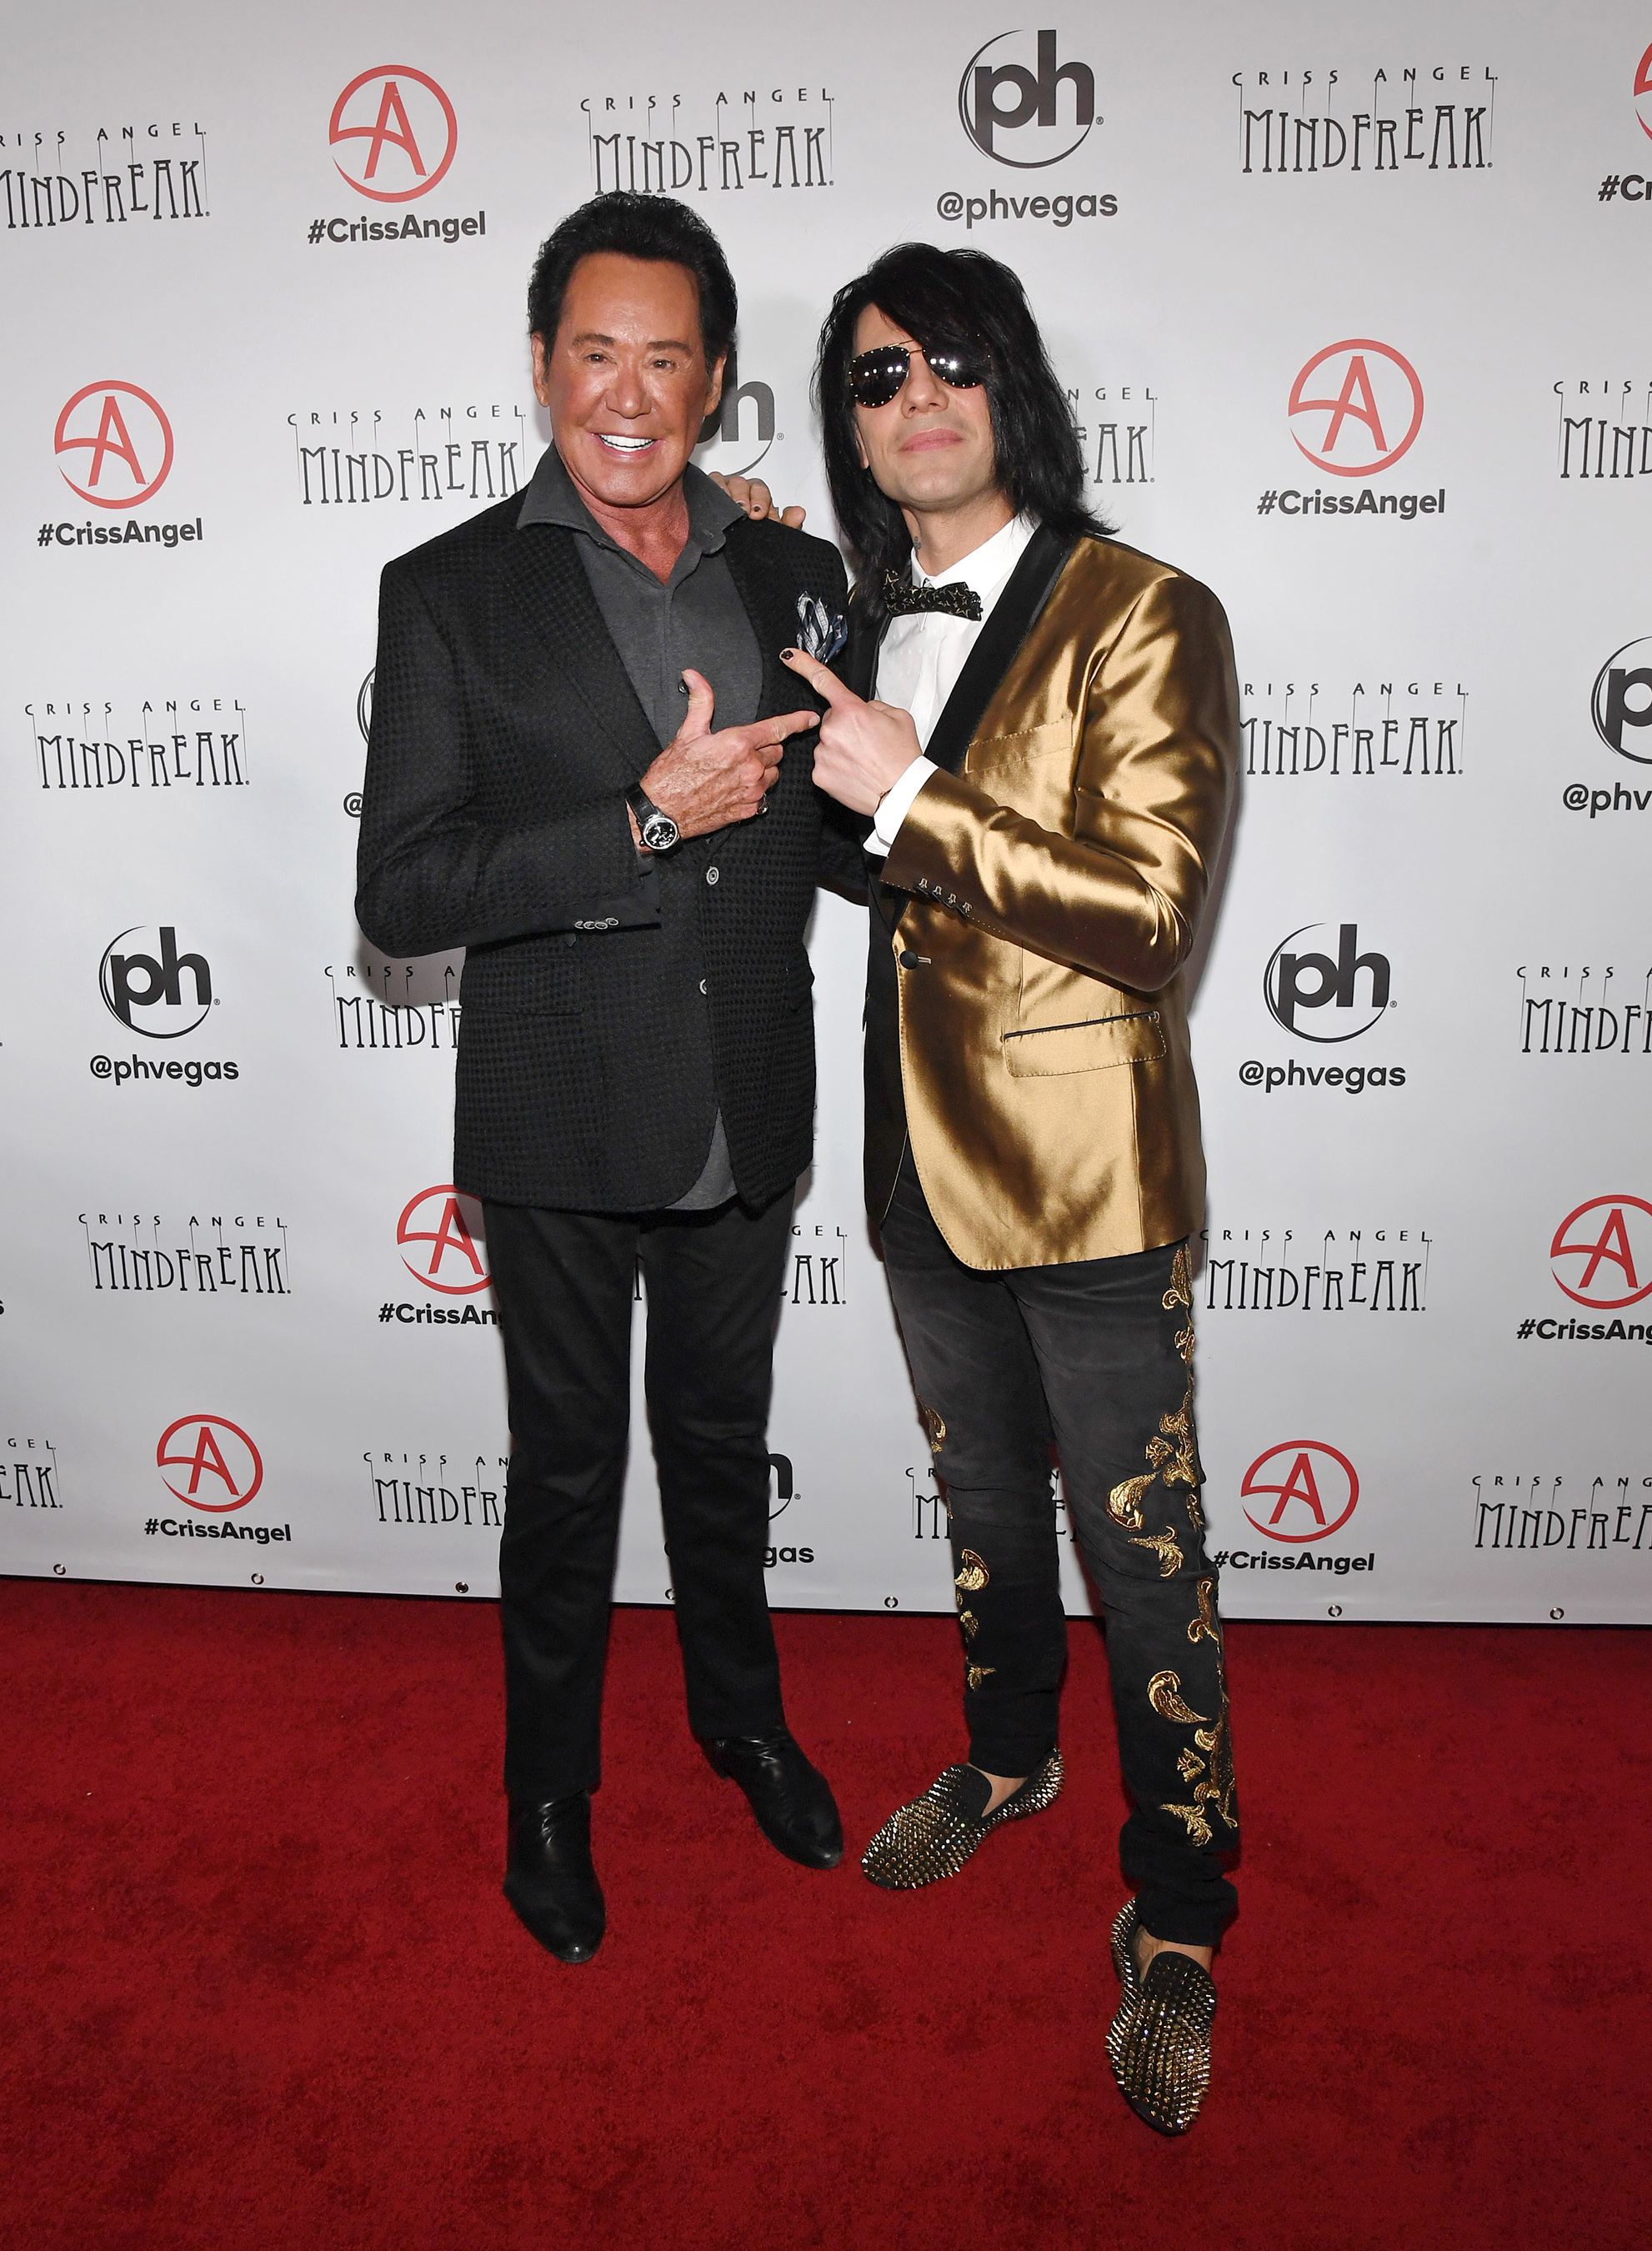 Entertainer Wayne Newton (L) and illusionist Criss Angel attend the grand opening of Criss Angel MINDFREAK at Planet Hollywood Resort & Casino on January 19, 2019 in Las Vegas